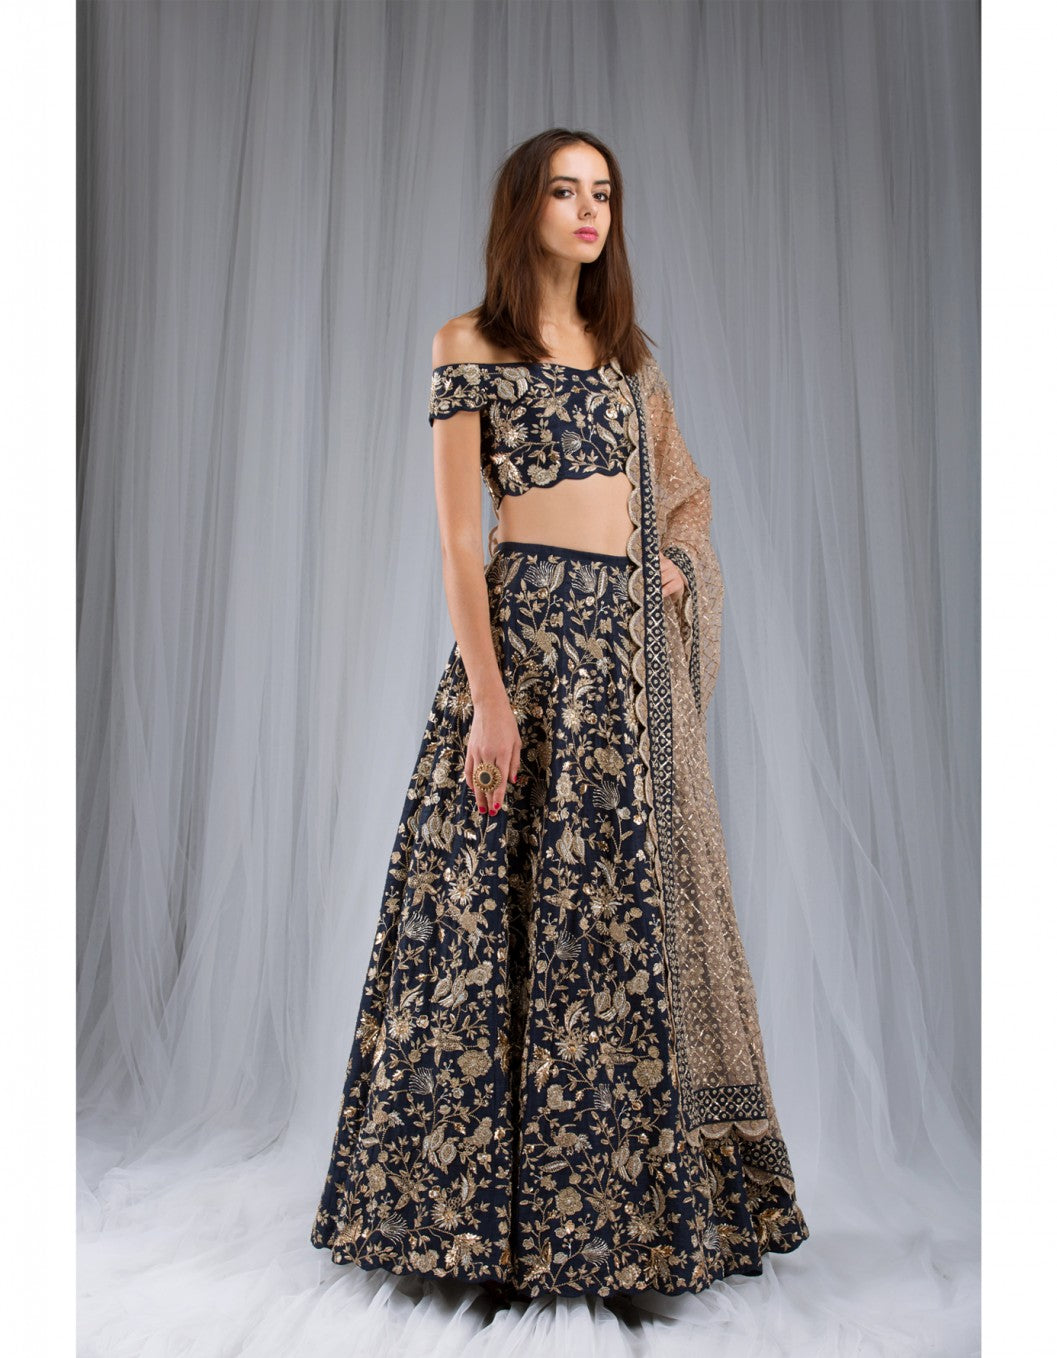 Navy Blue Color Exclusive Designer Bridal Lehenga-Bridal Lehenga Store CME081